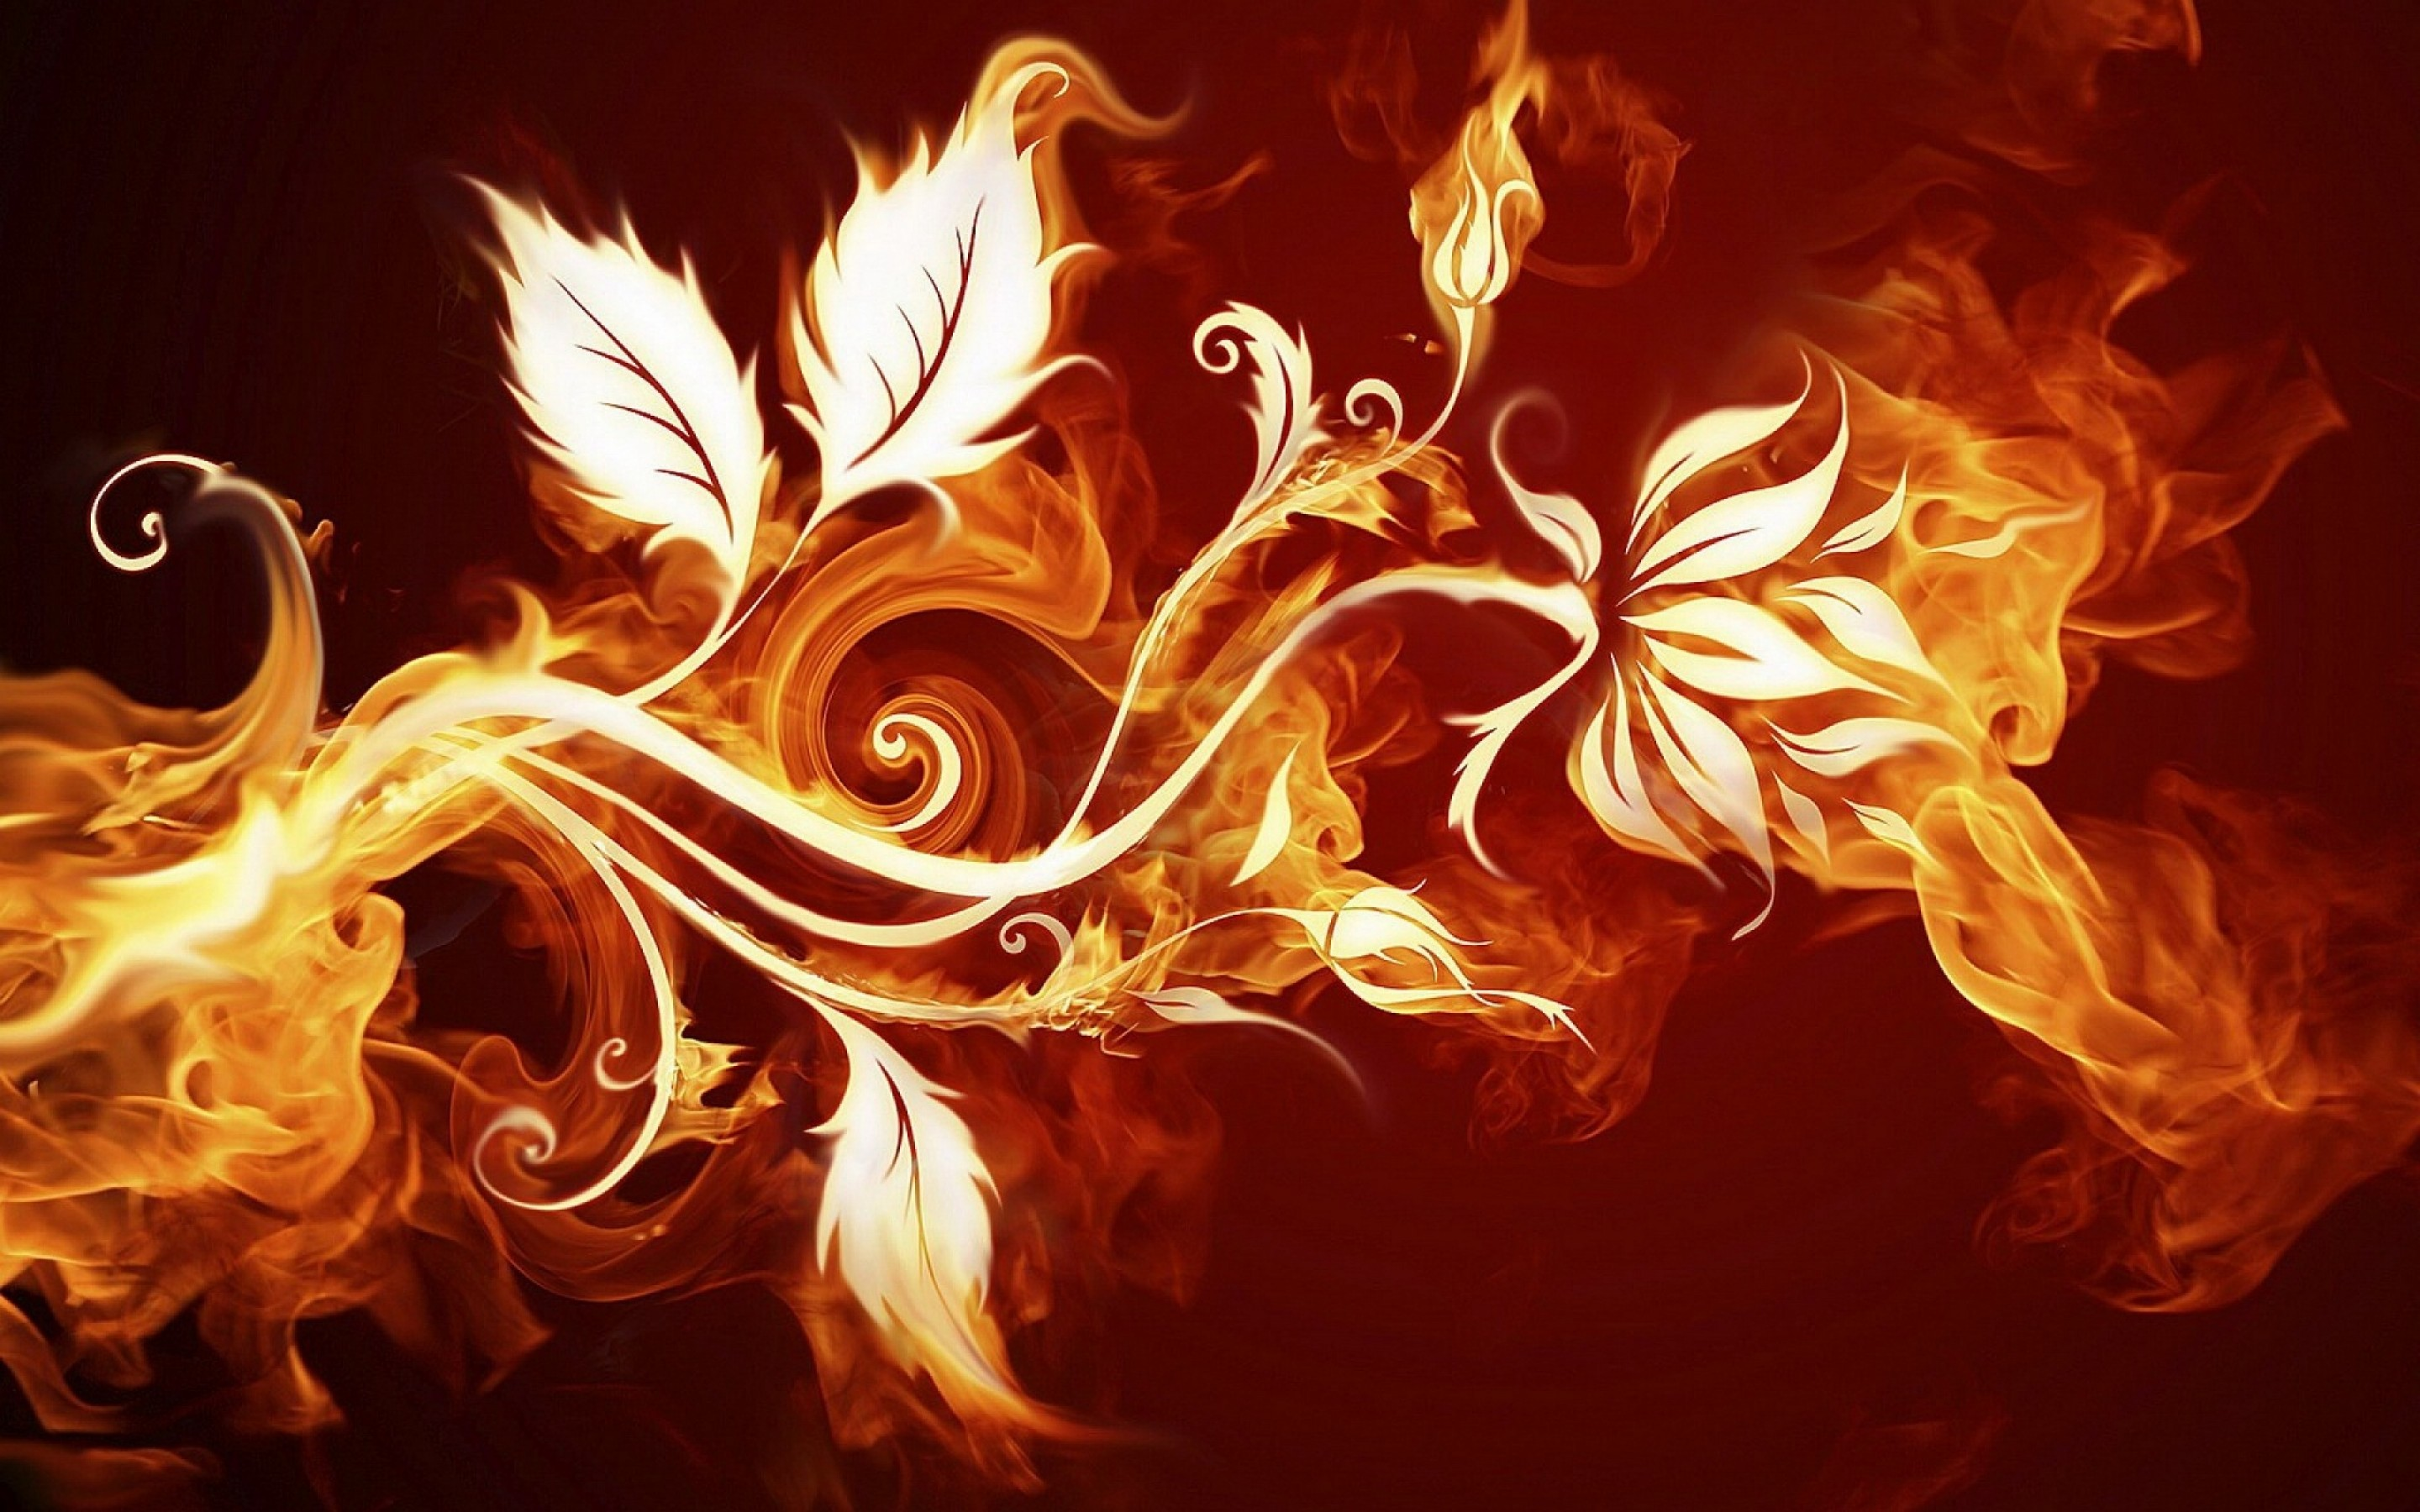 20 fire art wallpapers for New cool images